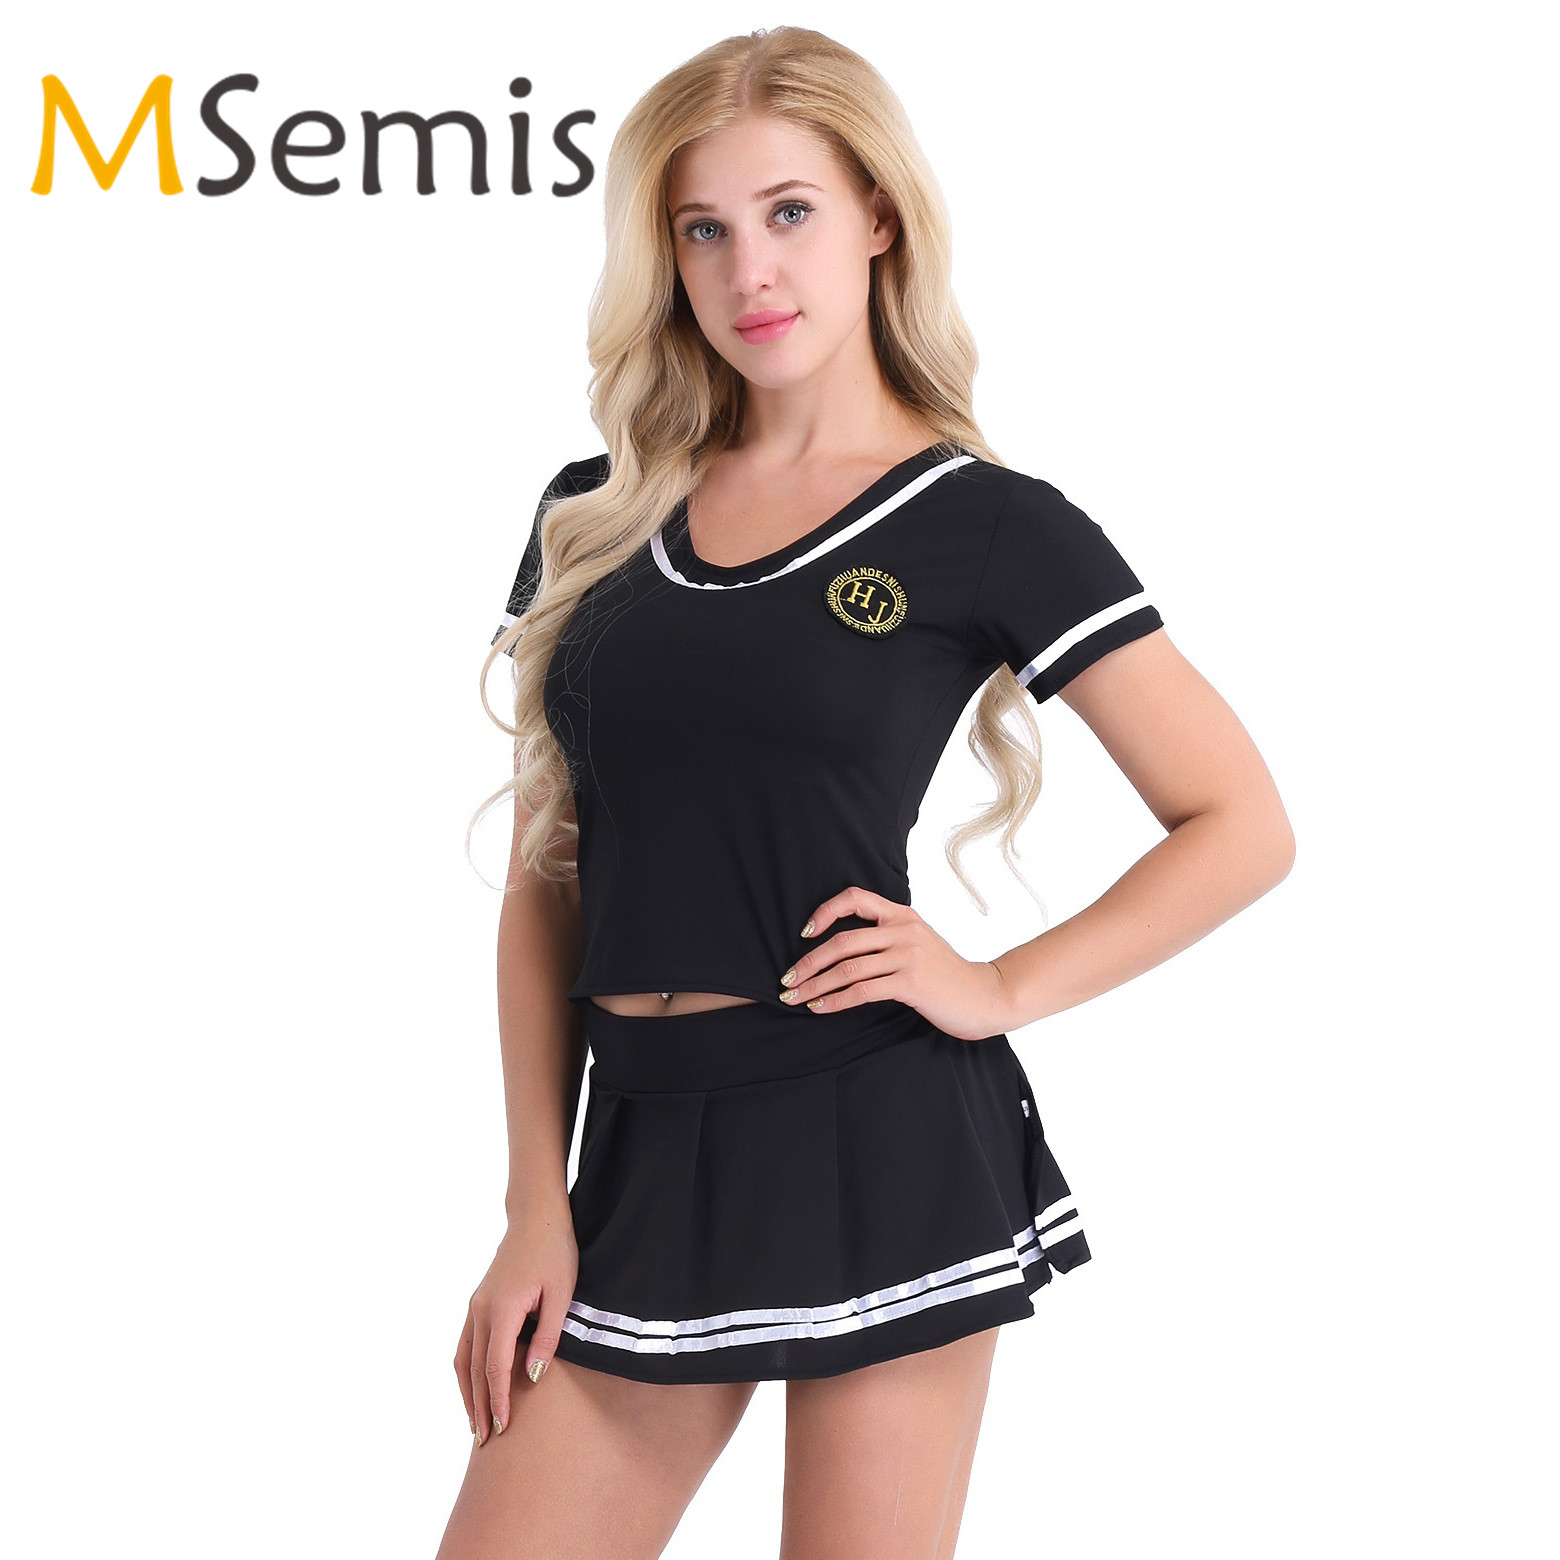 3Pcs Women Girls Cheerleader Cosplay Costume Lingerie Outfit T-shirt Top With Mini Skirt And G-string Underwear Sports Uniform